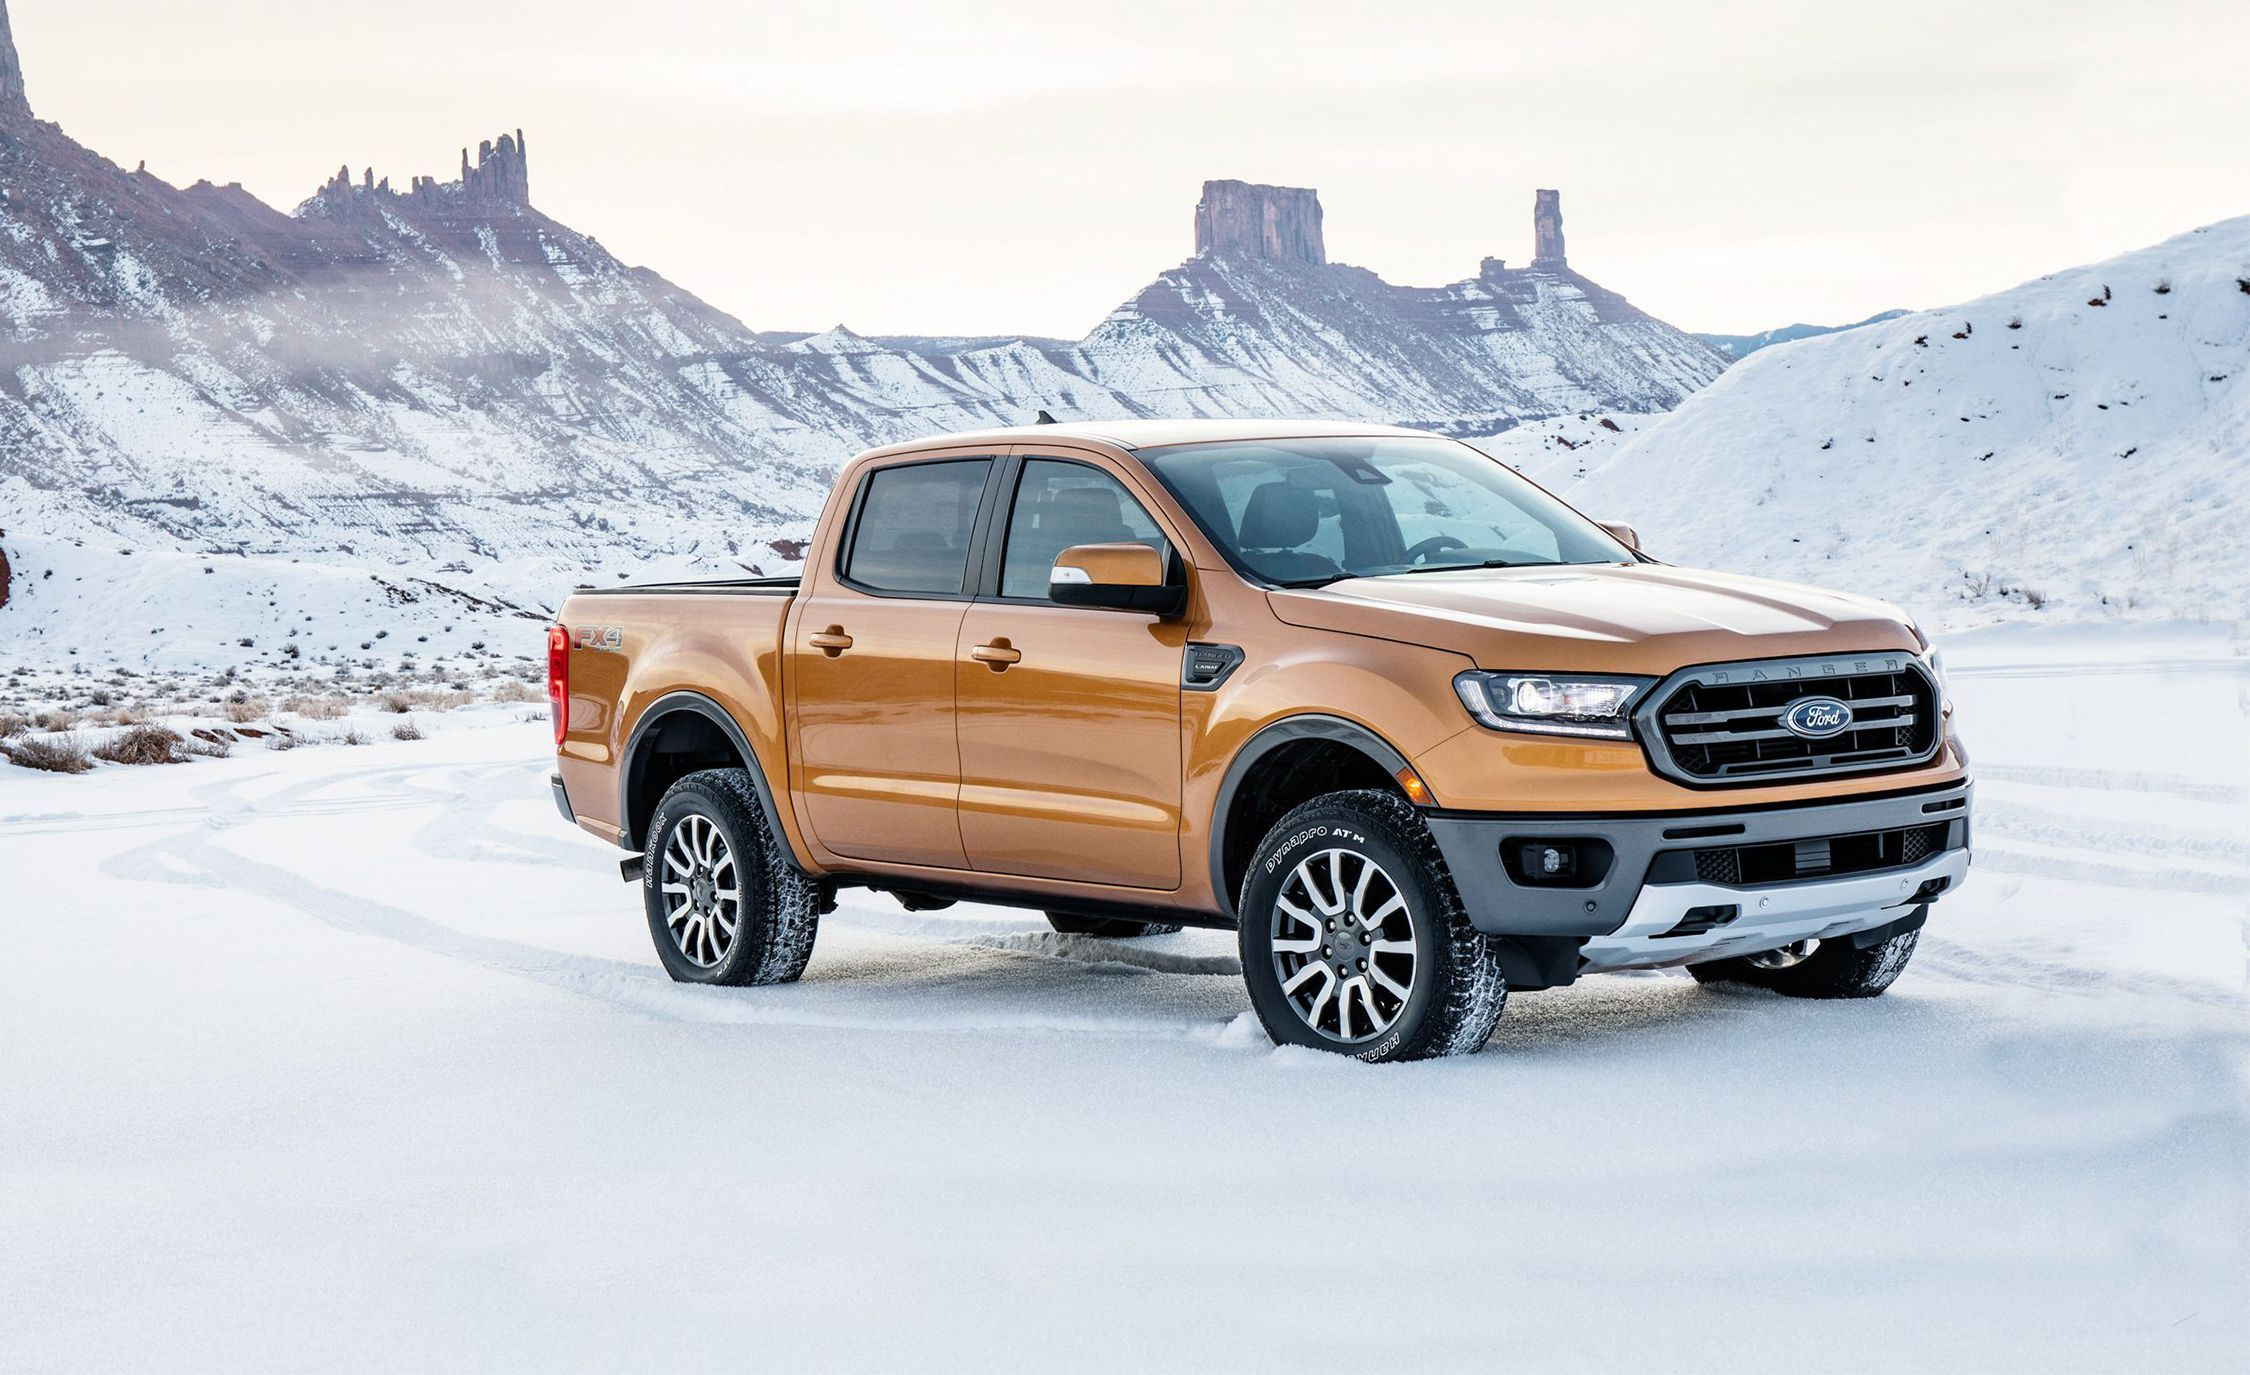 Ford Ranger 2018 Release Date Check More At Http Www Autocar1